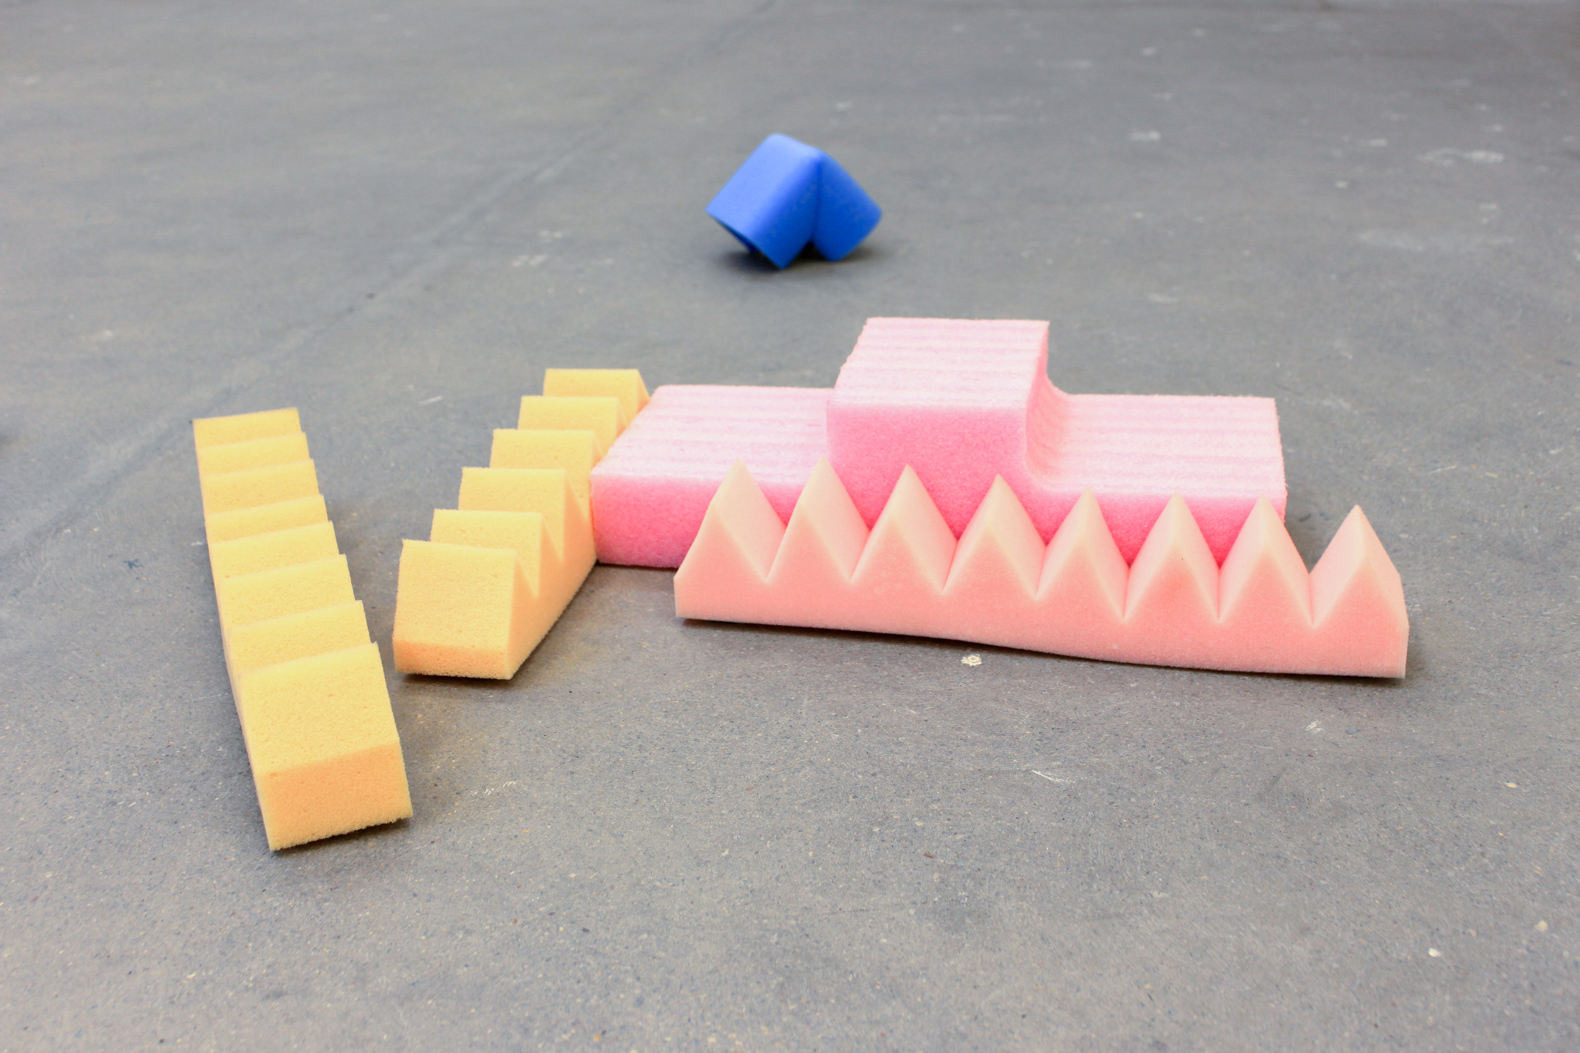 Self-organizing system, 2014. Courtesy of the artist and Kunstraum, London UK.